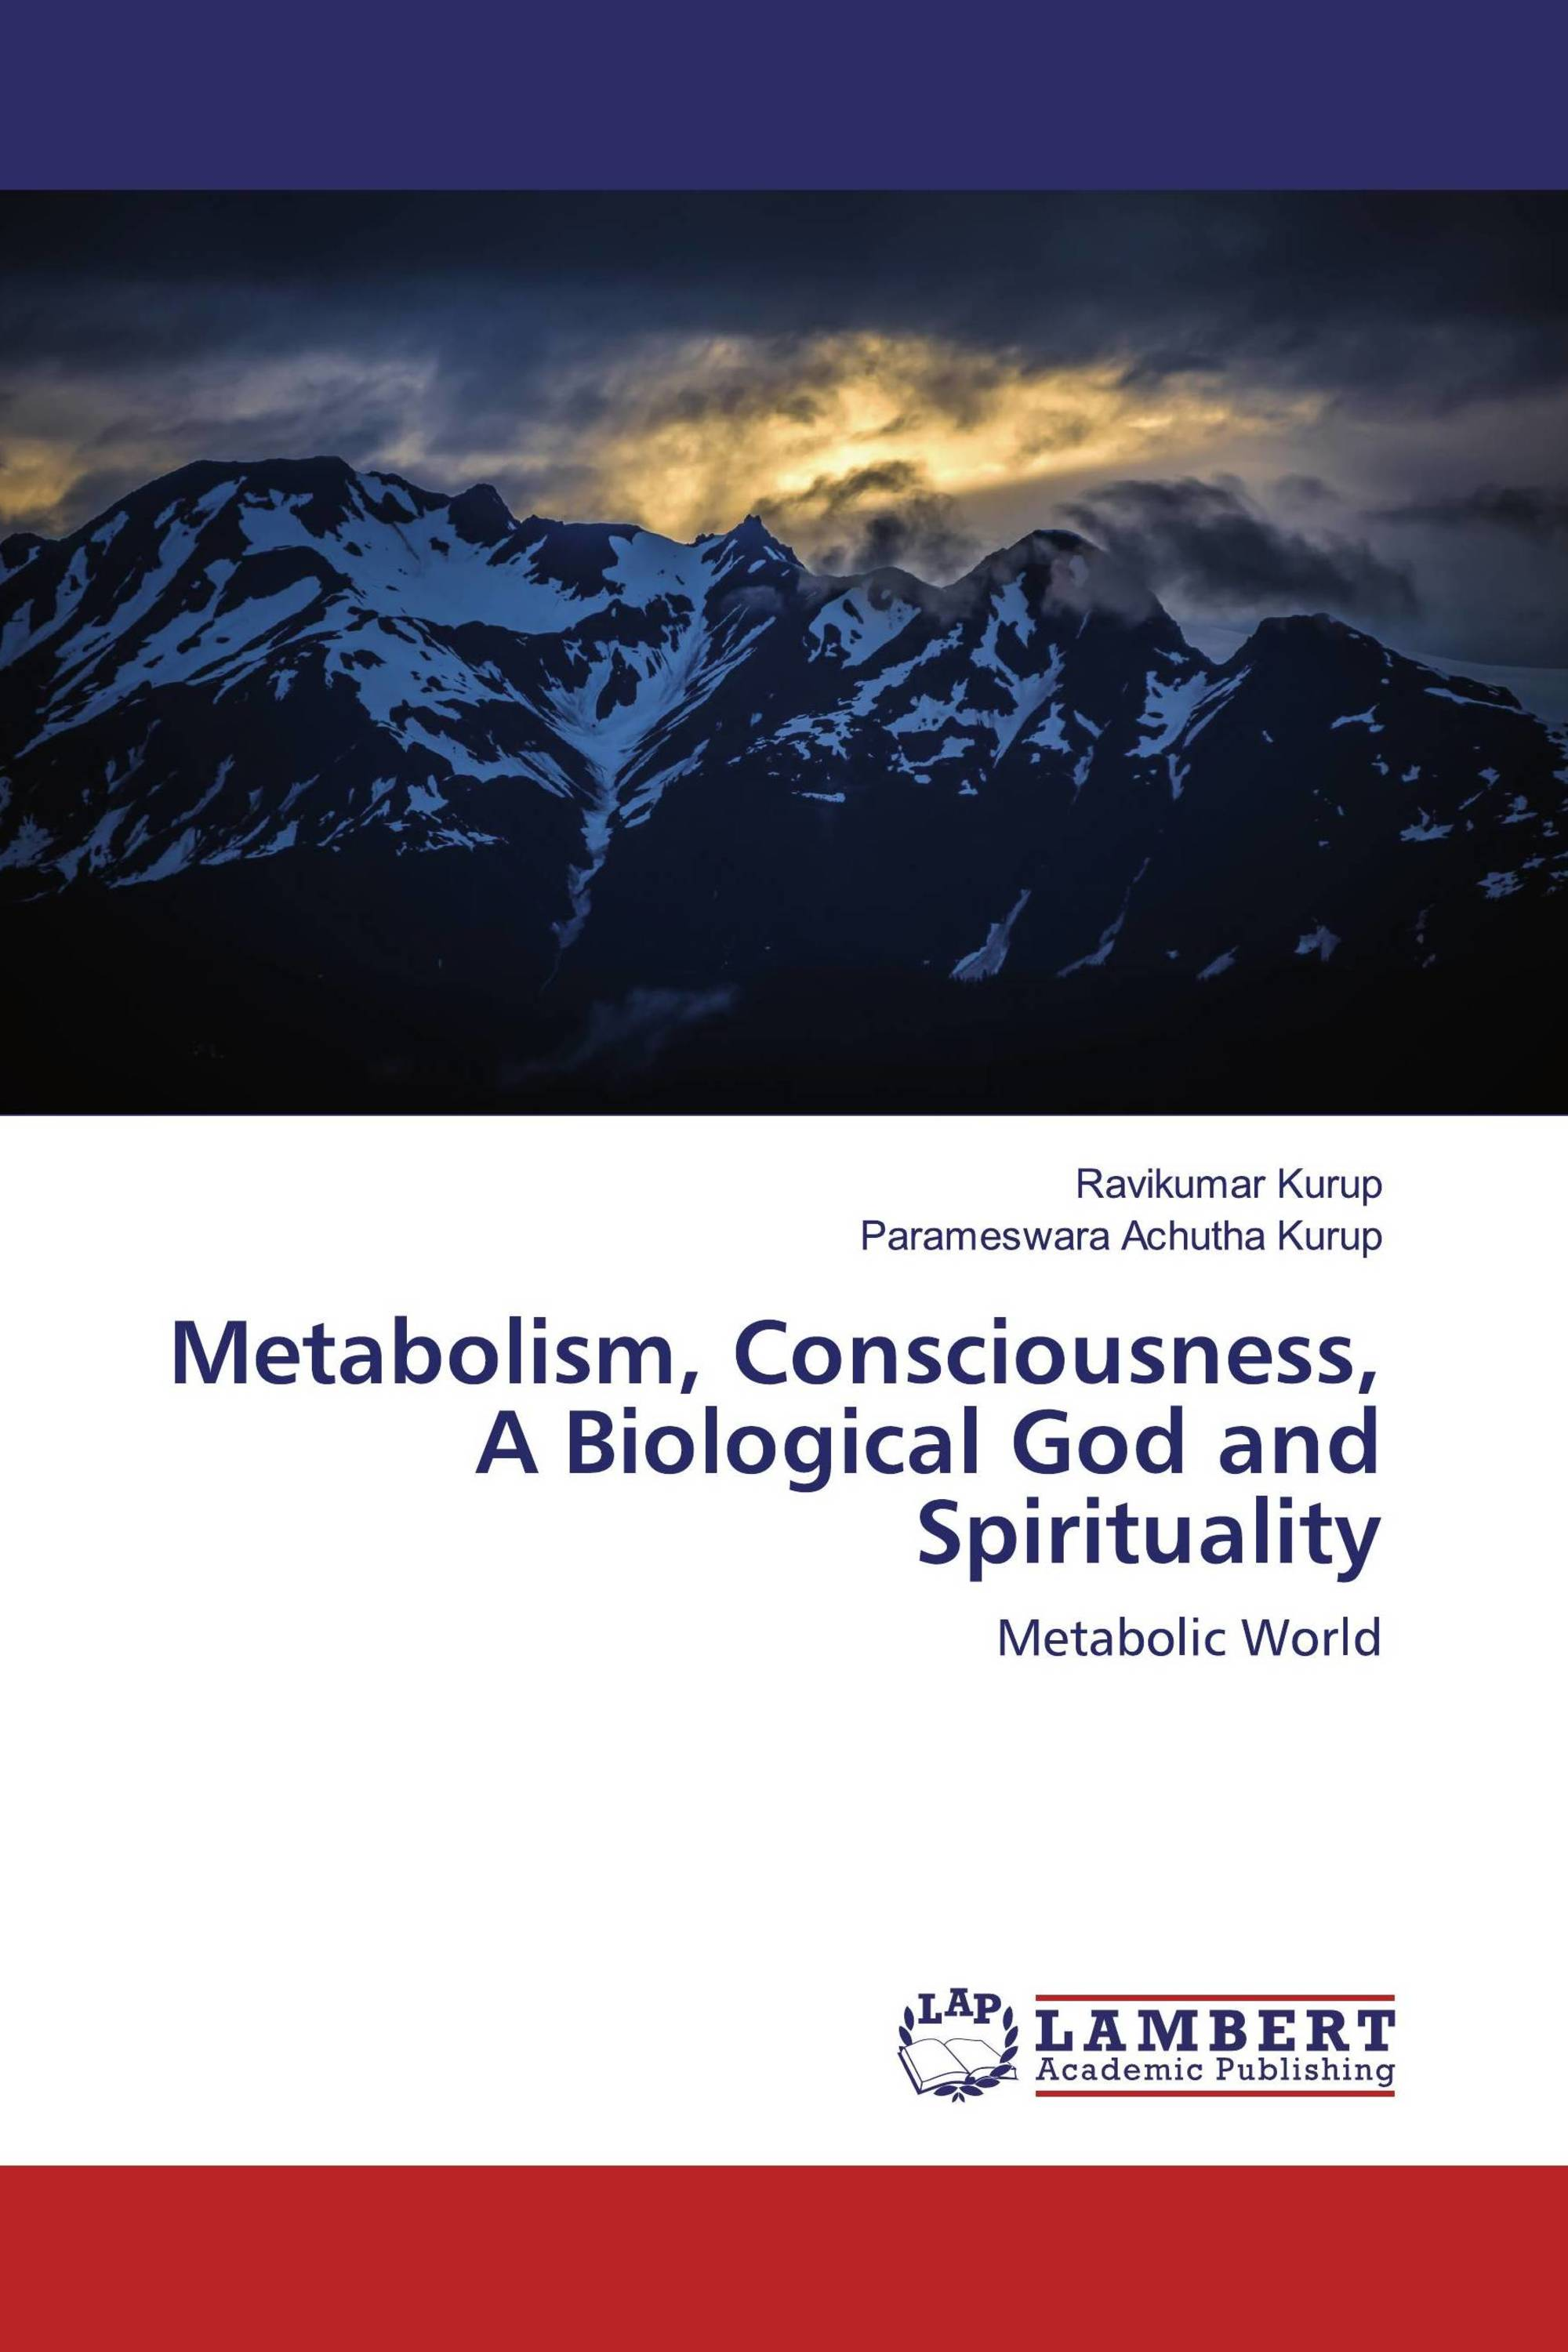 Metabolism, Consciousness, A Biological God and Spirituality